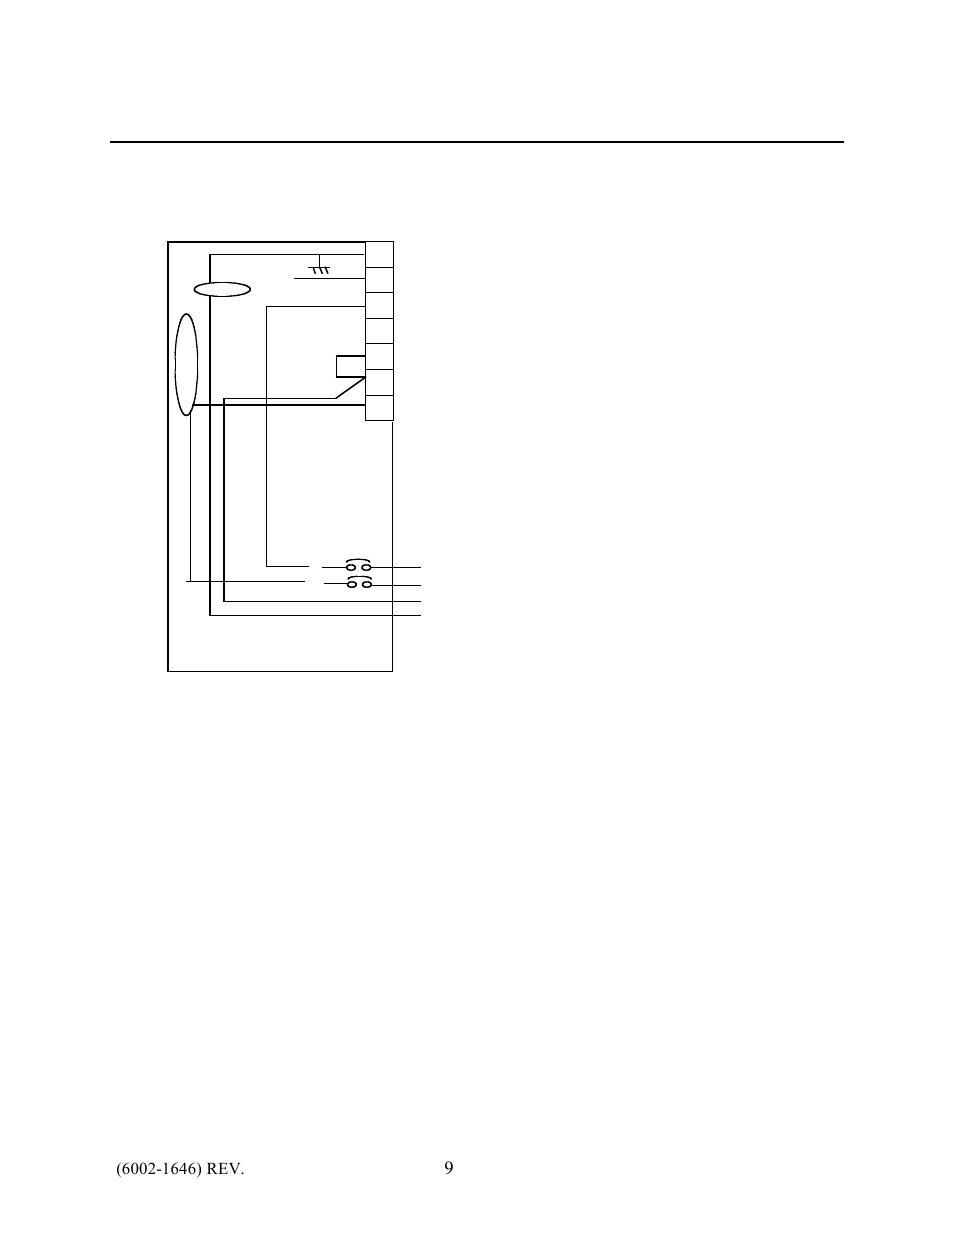 Online Power Ibm Fire Alarm Back Up Ups1481 Unit User Manual X8 Wiring Diagram Page 15